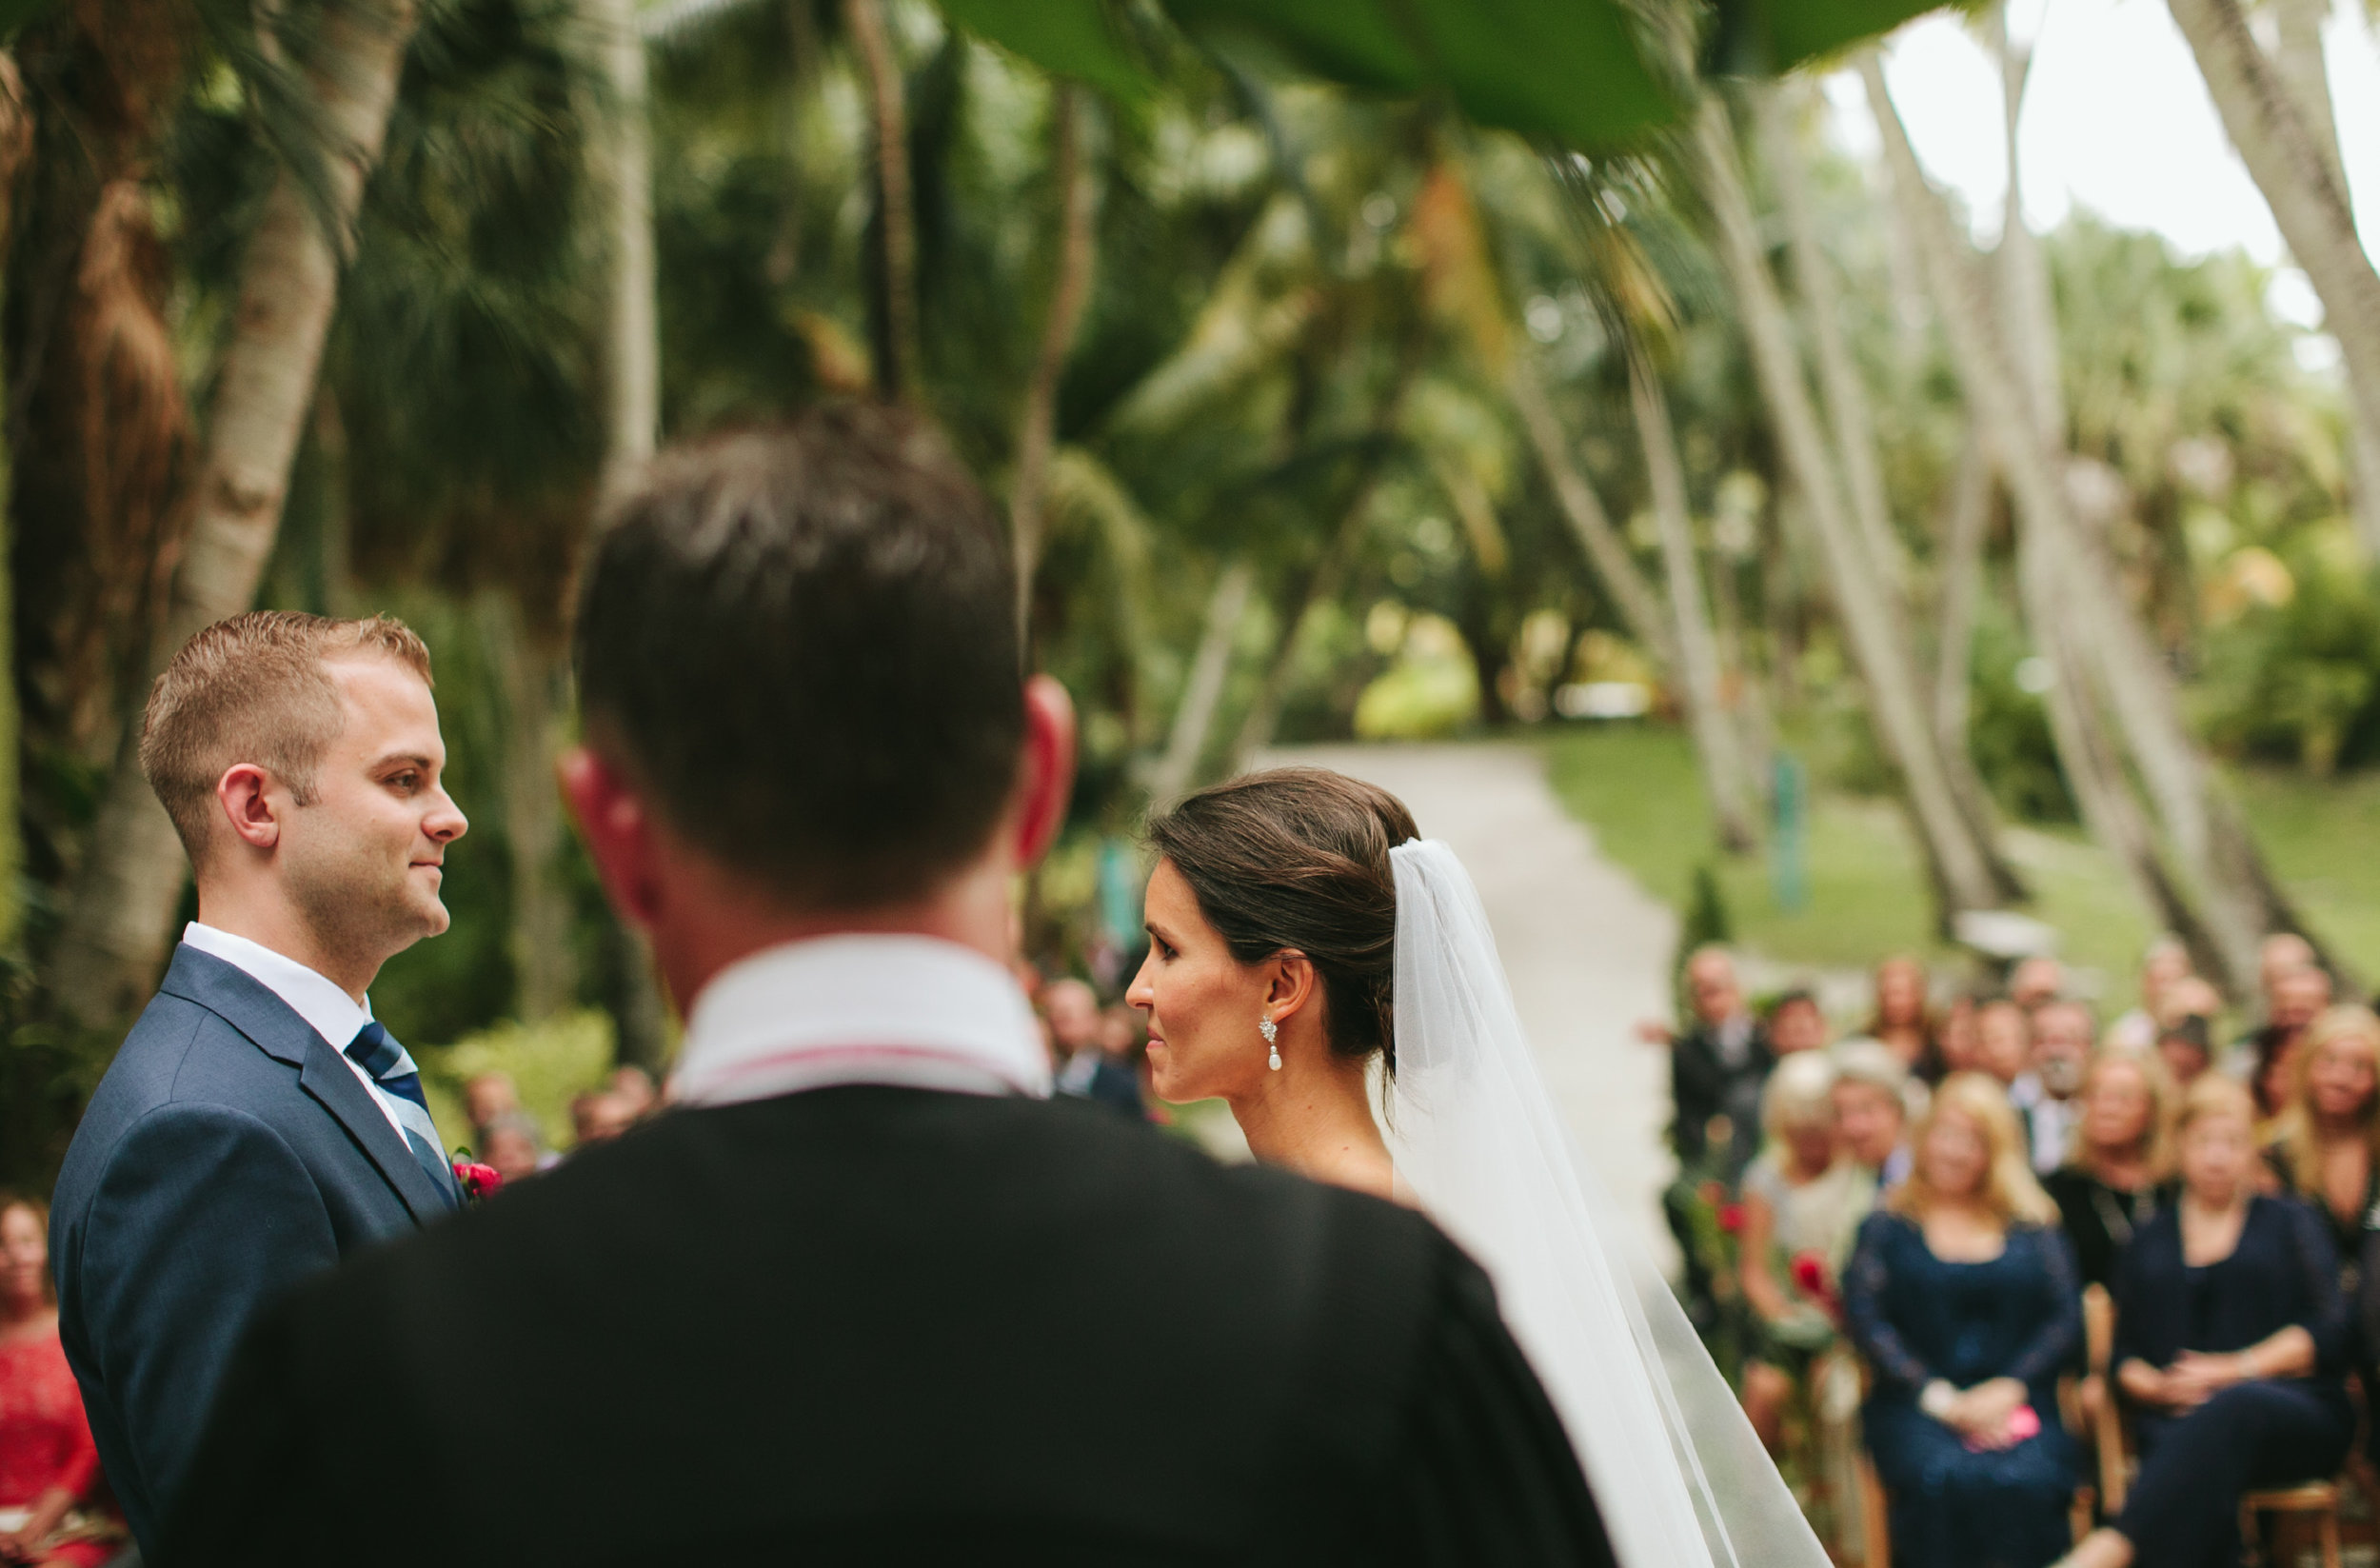 Heather + Greg's Wedding at the Bonnet House Ft Lauderdale55.jpg